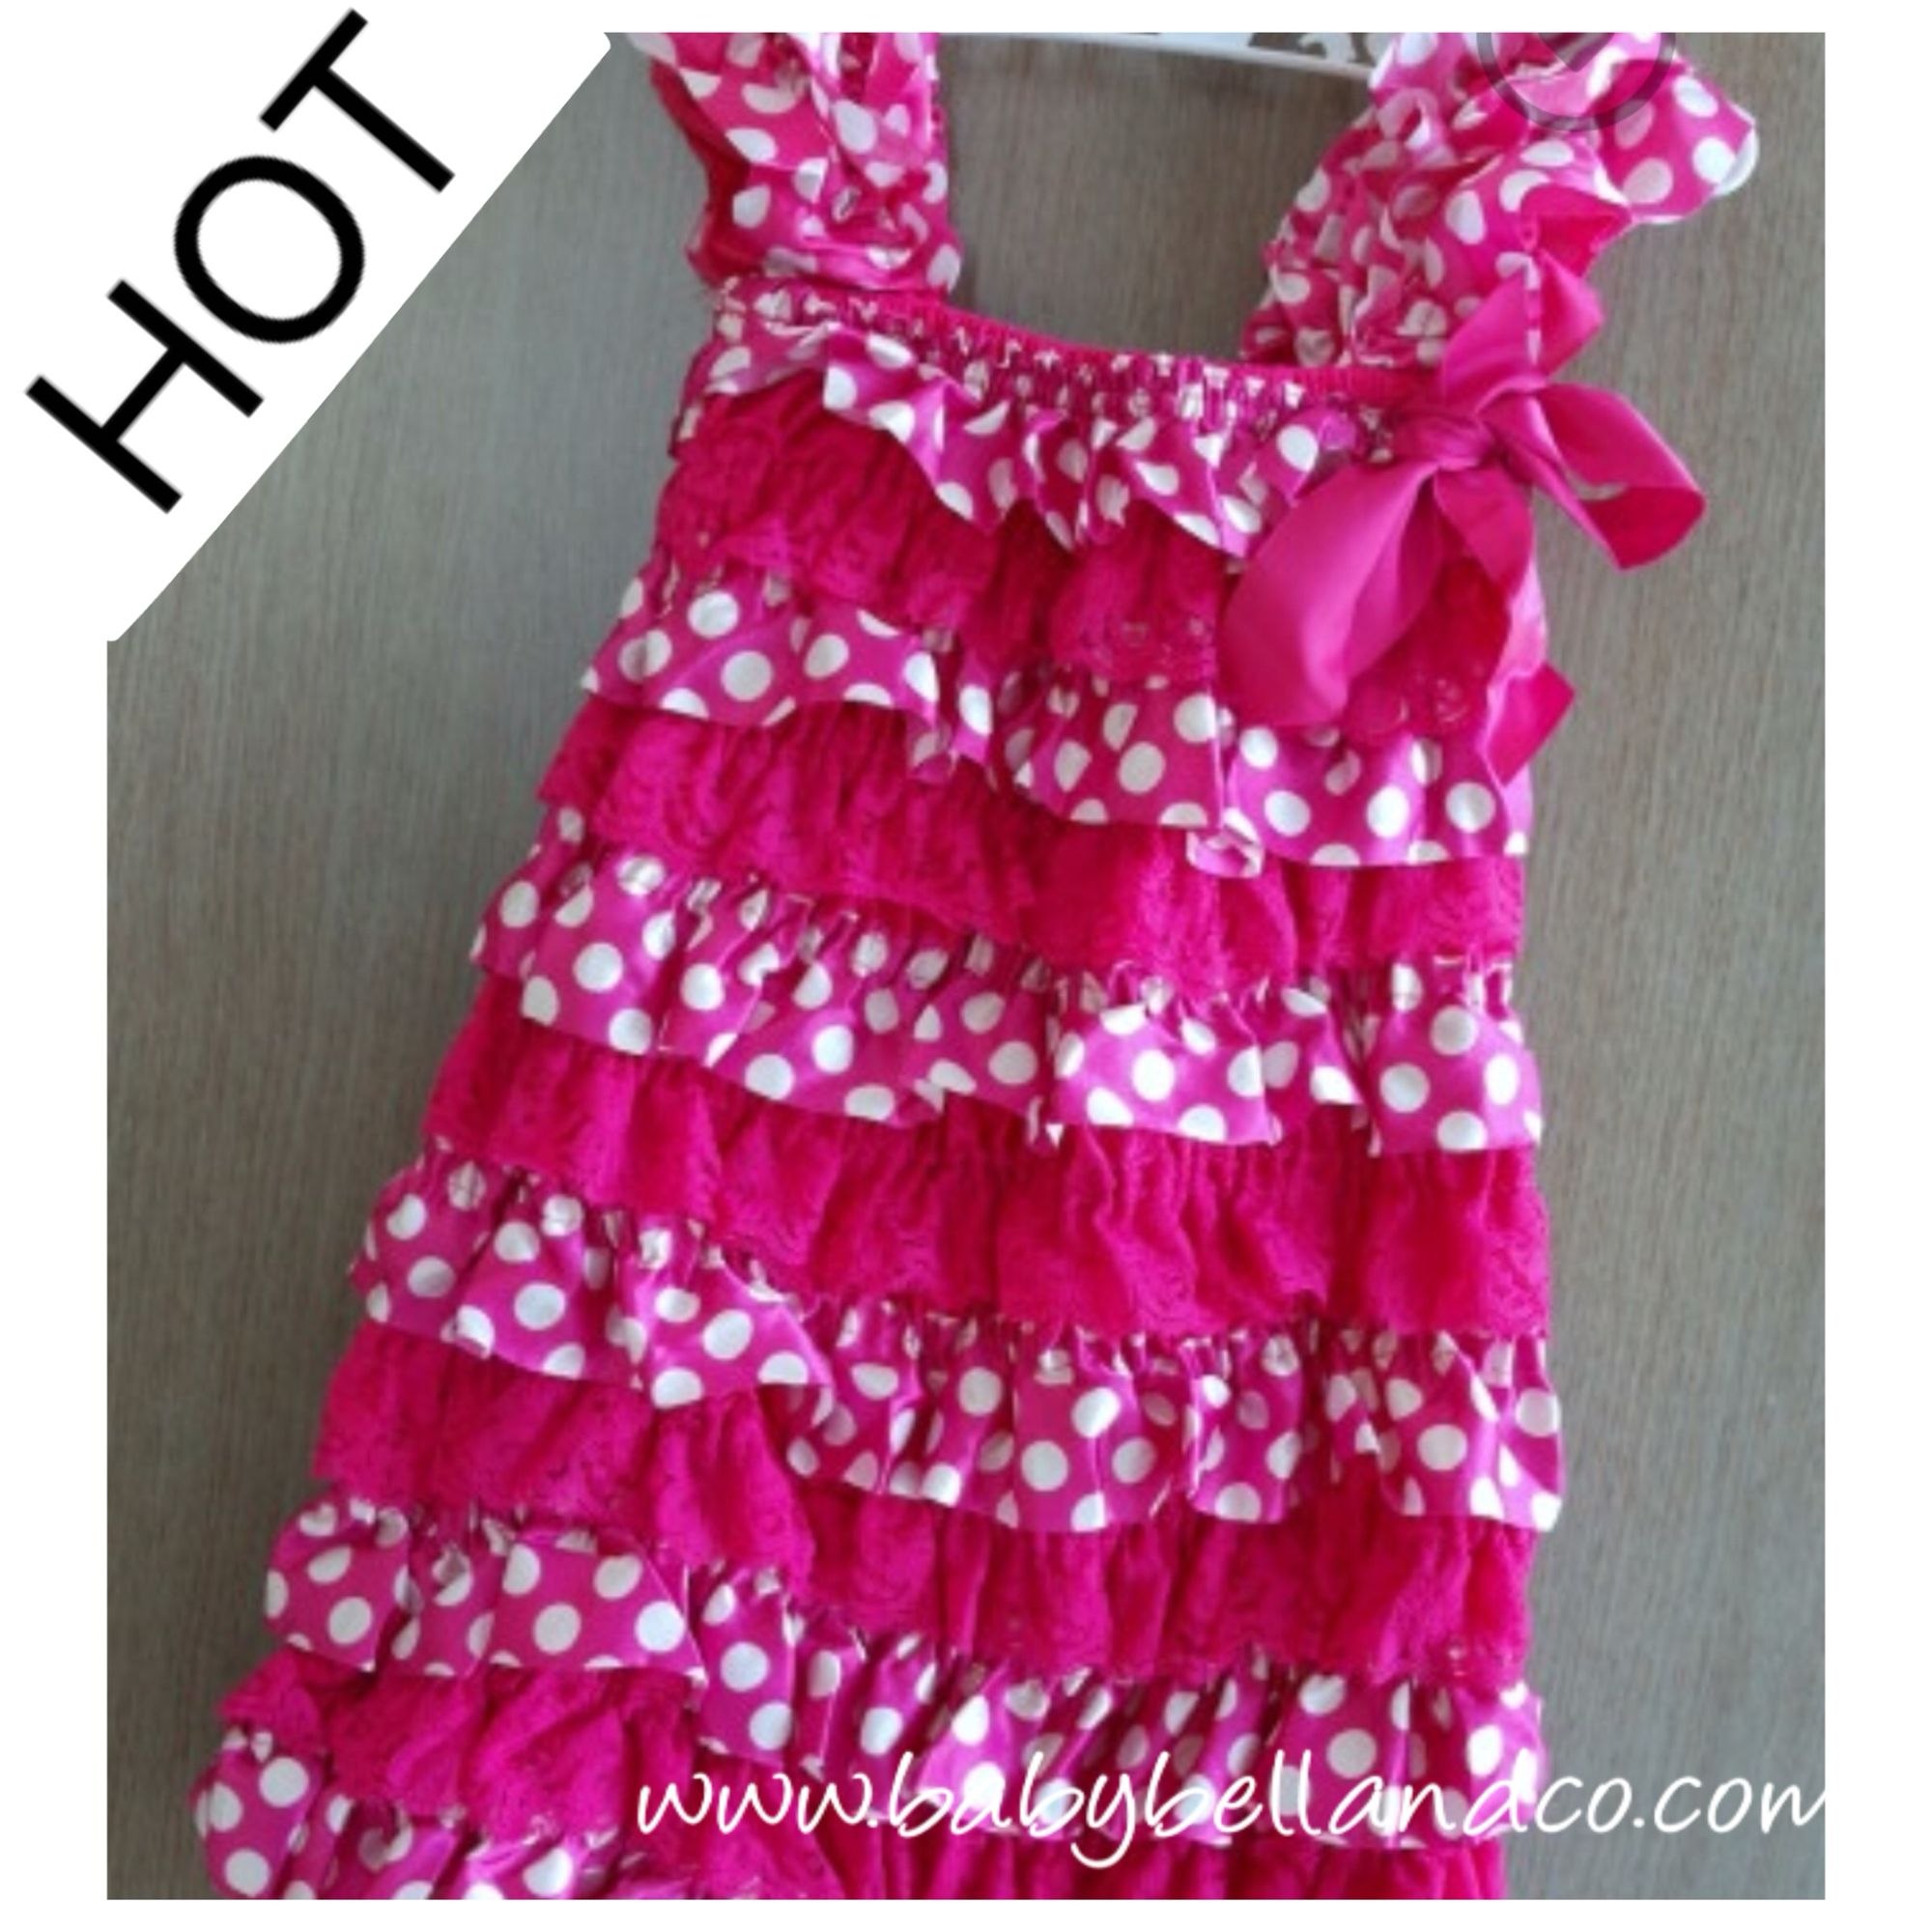 Hot Pink Dotty Dress at www.babybellandco.com